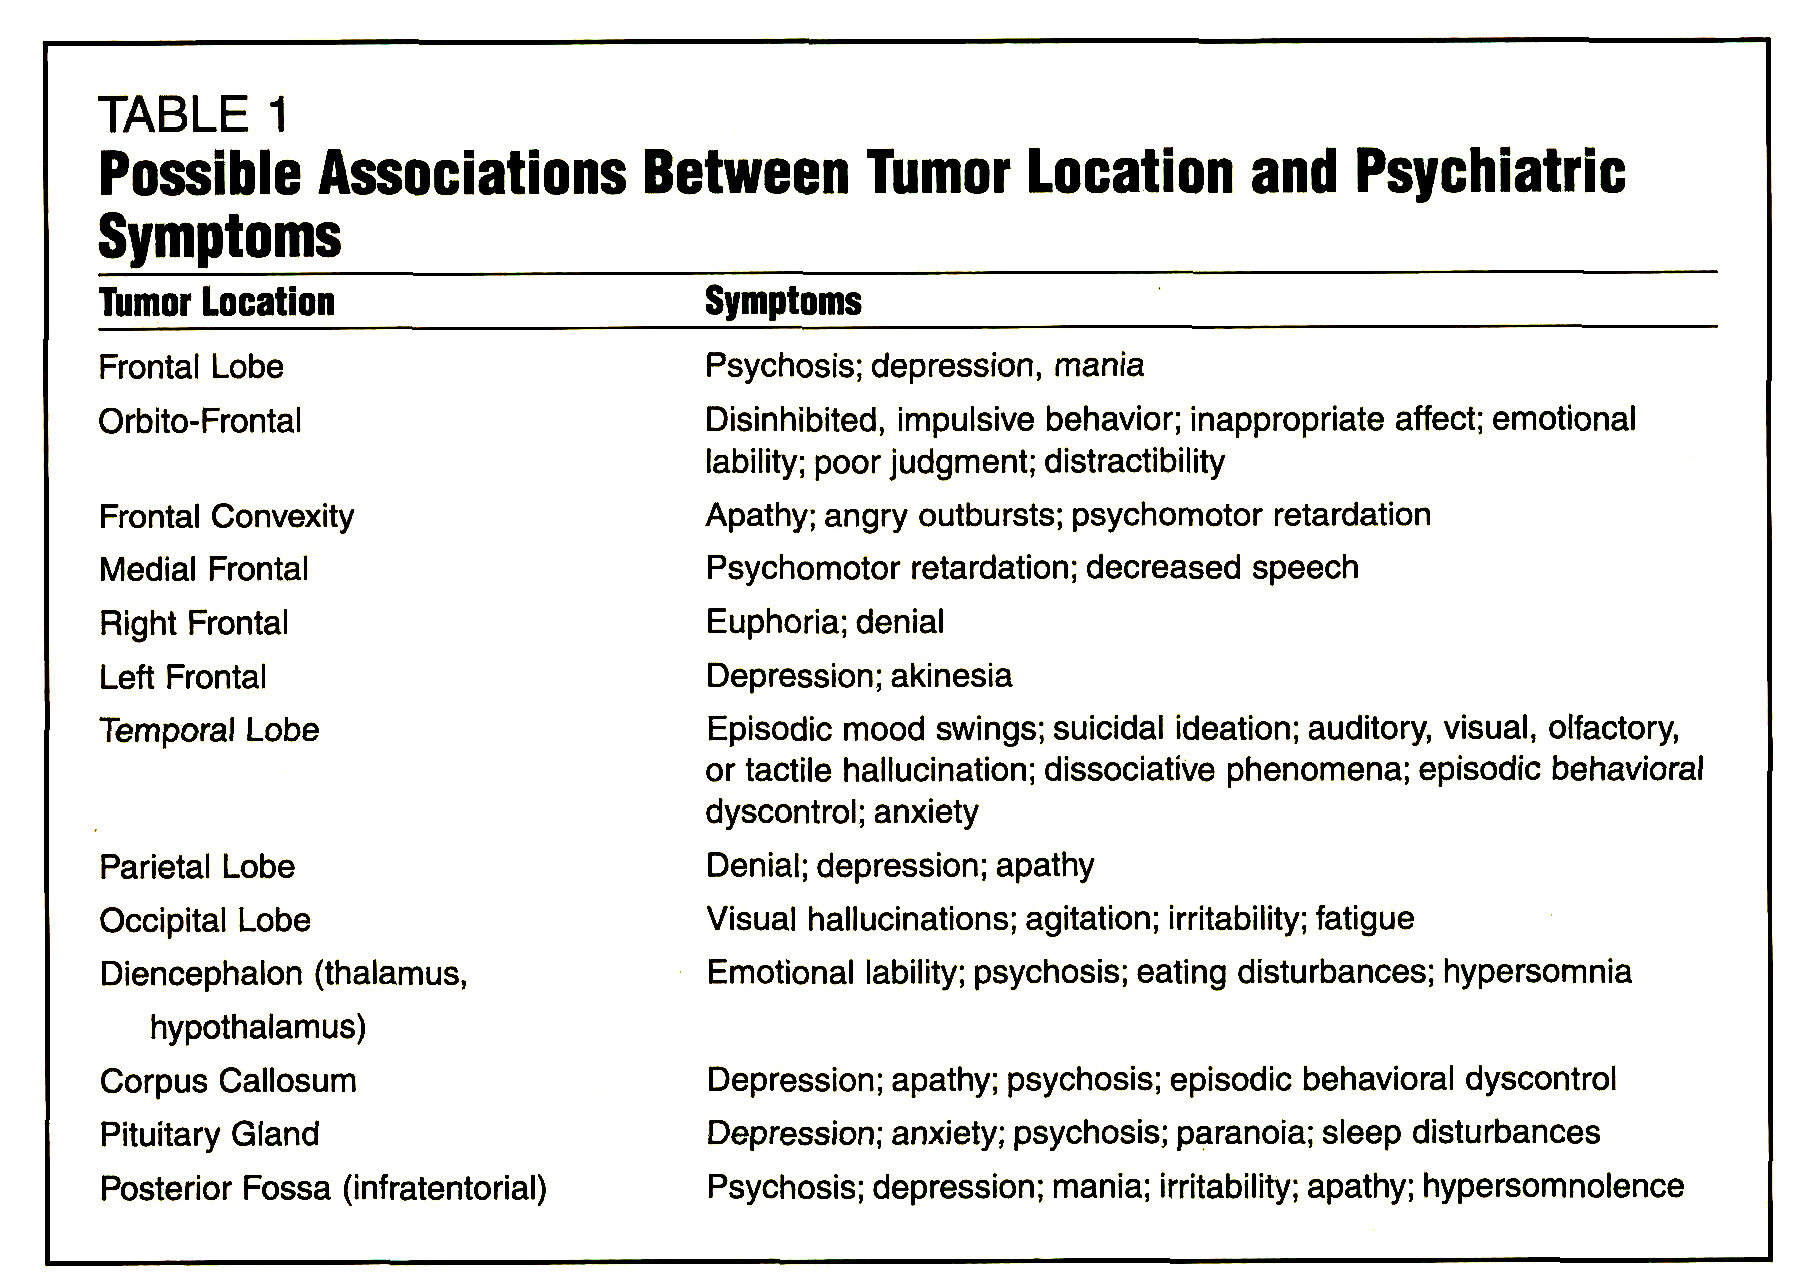 TABLE 1Possible Associations Between Tumor Location and Psychiatric Symptoms